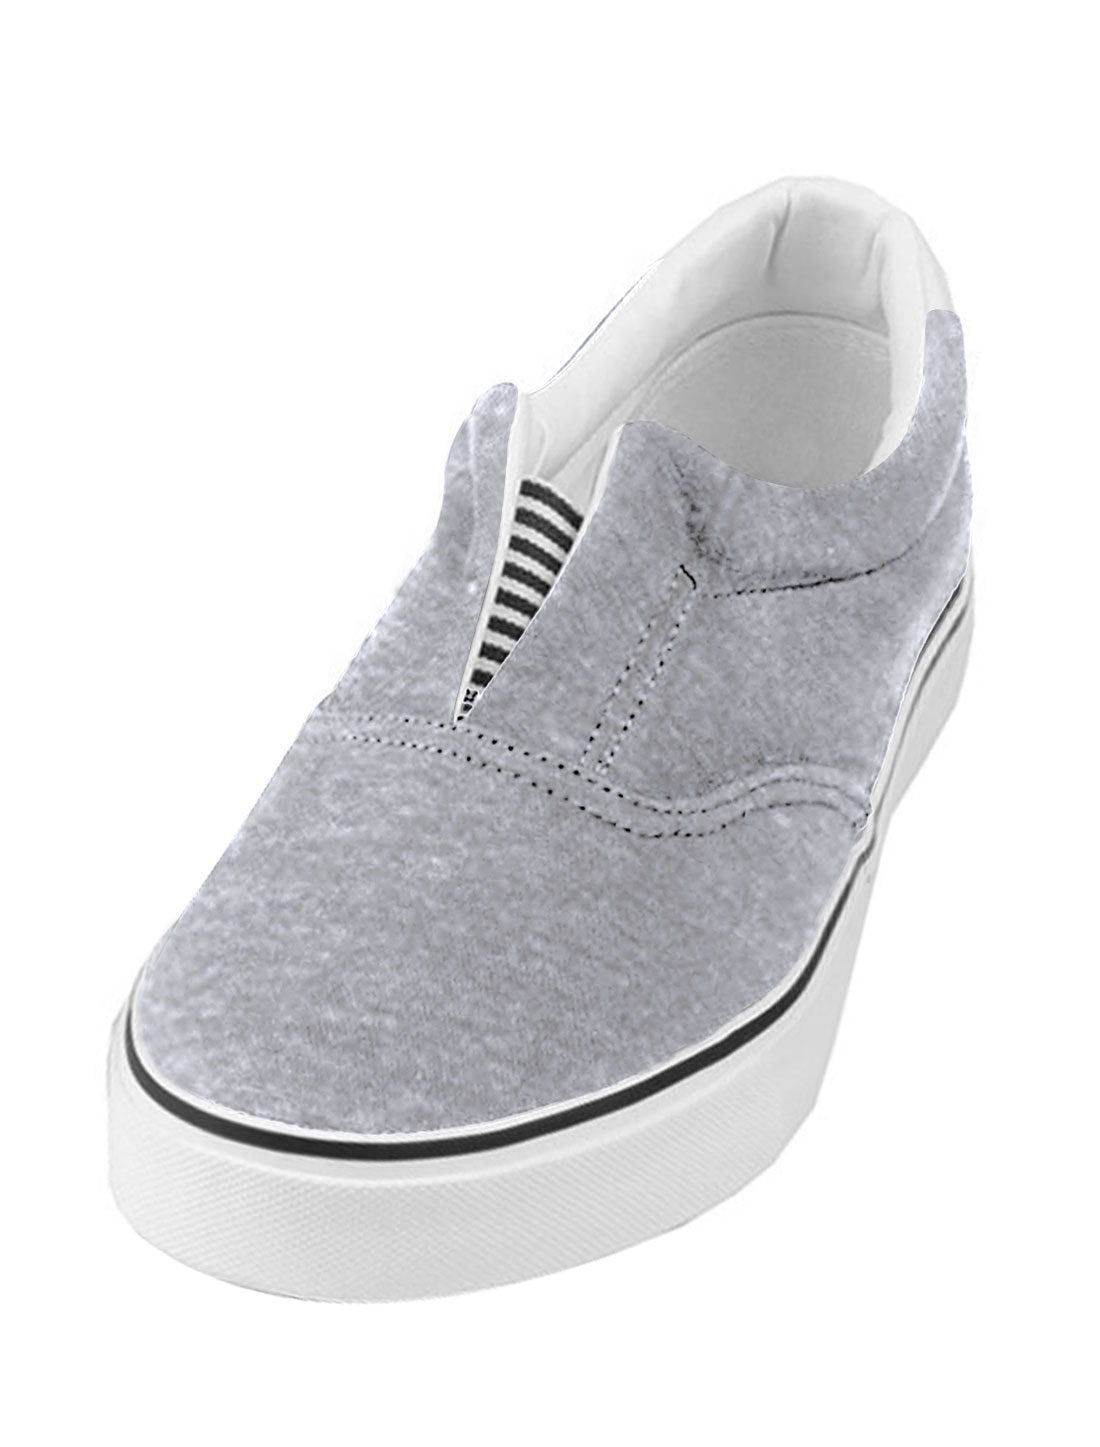 Unisex Light Gray Easy Wear Skidproof Leisure Shoes US Size 8.5/Women 10.5